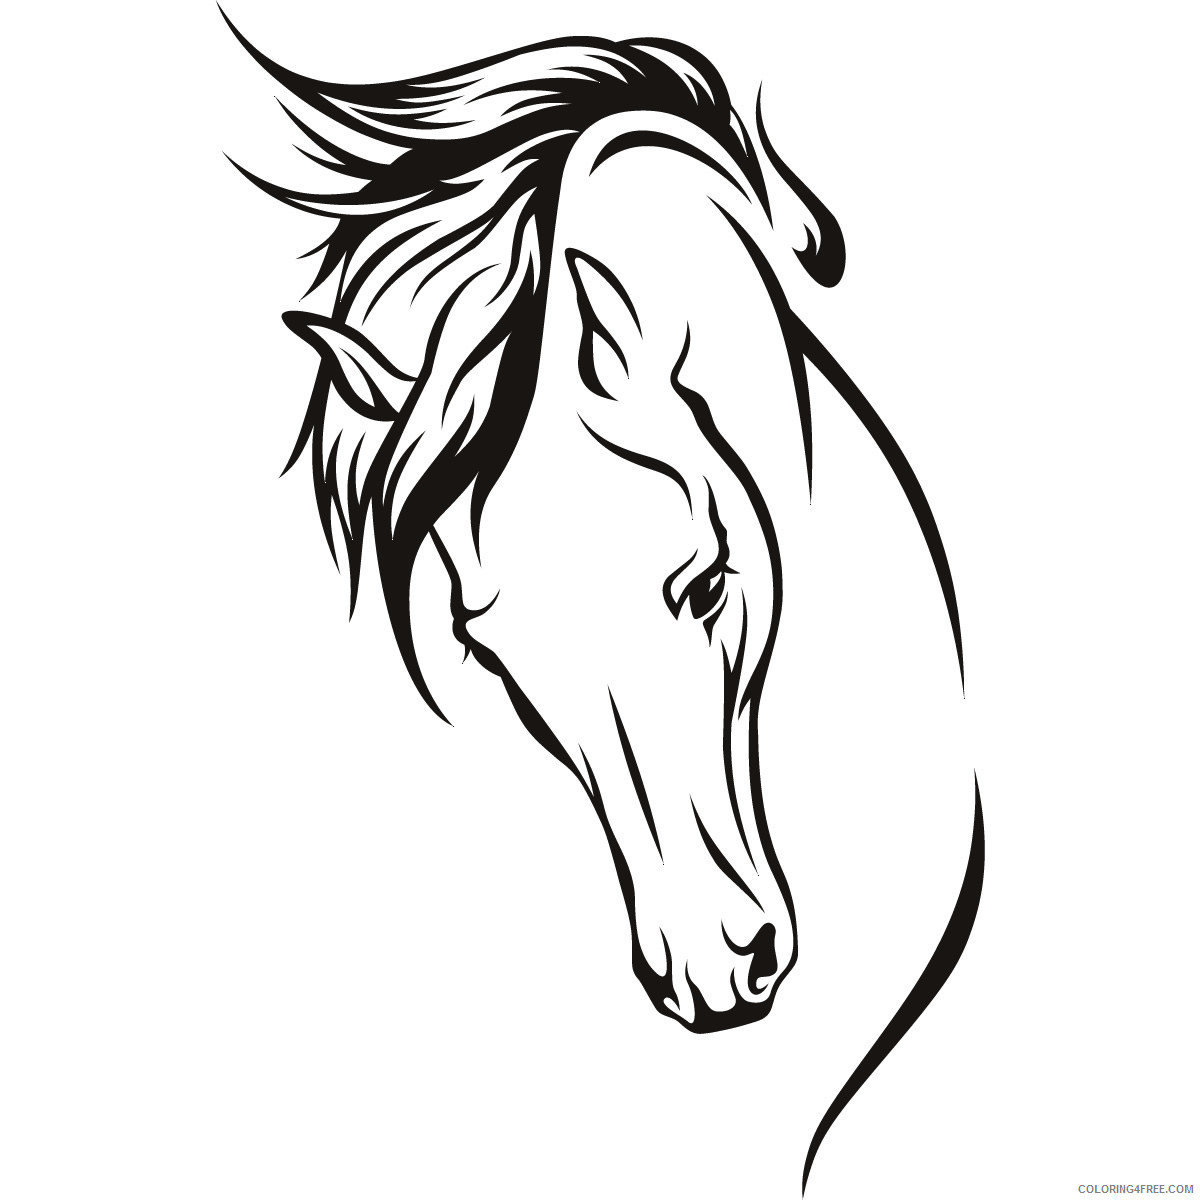 Horse Head Coloring Pages horse head 3 jpg Printable Coloring4free